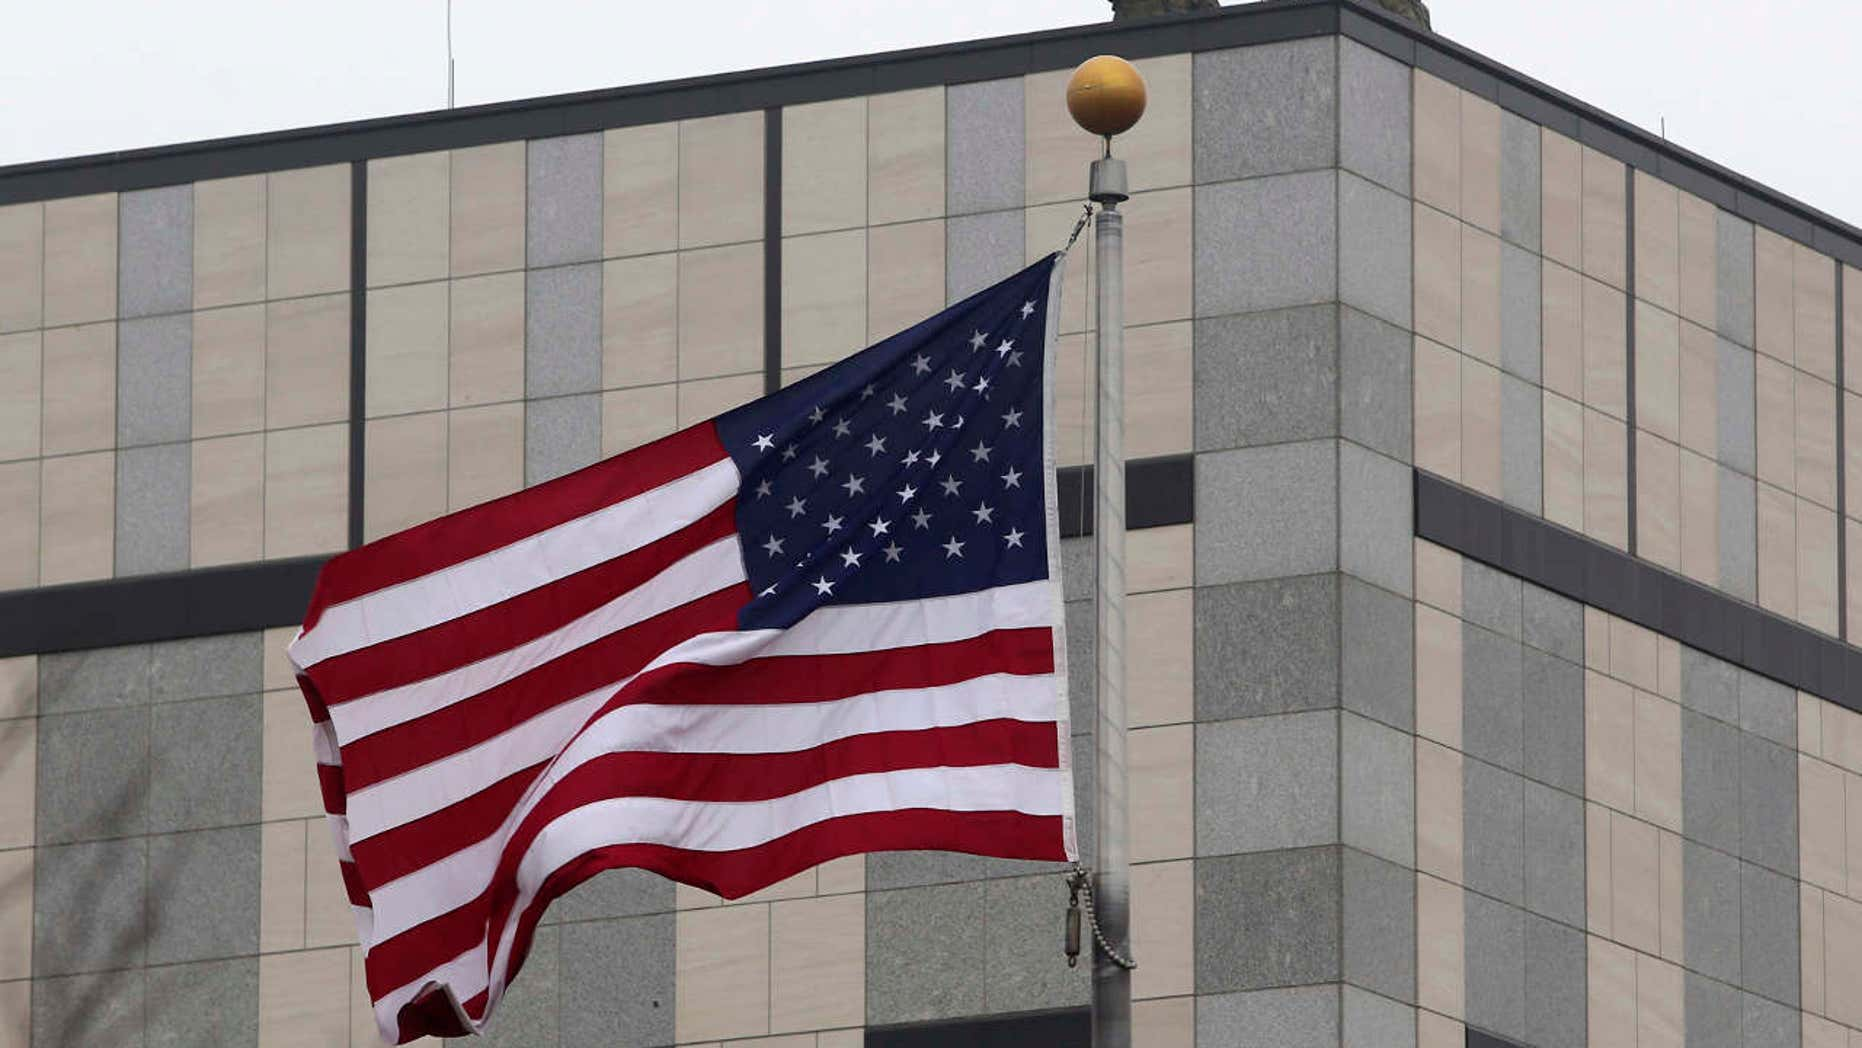 Guards are seen on the roof of the U.S. embassy in Kiev.